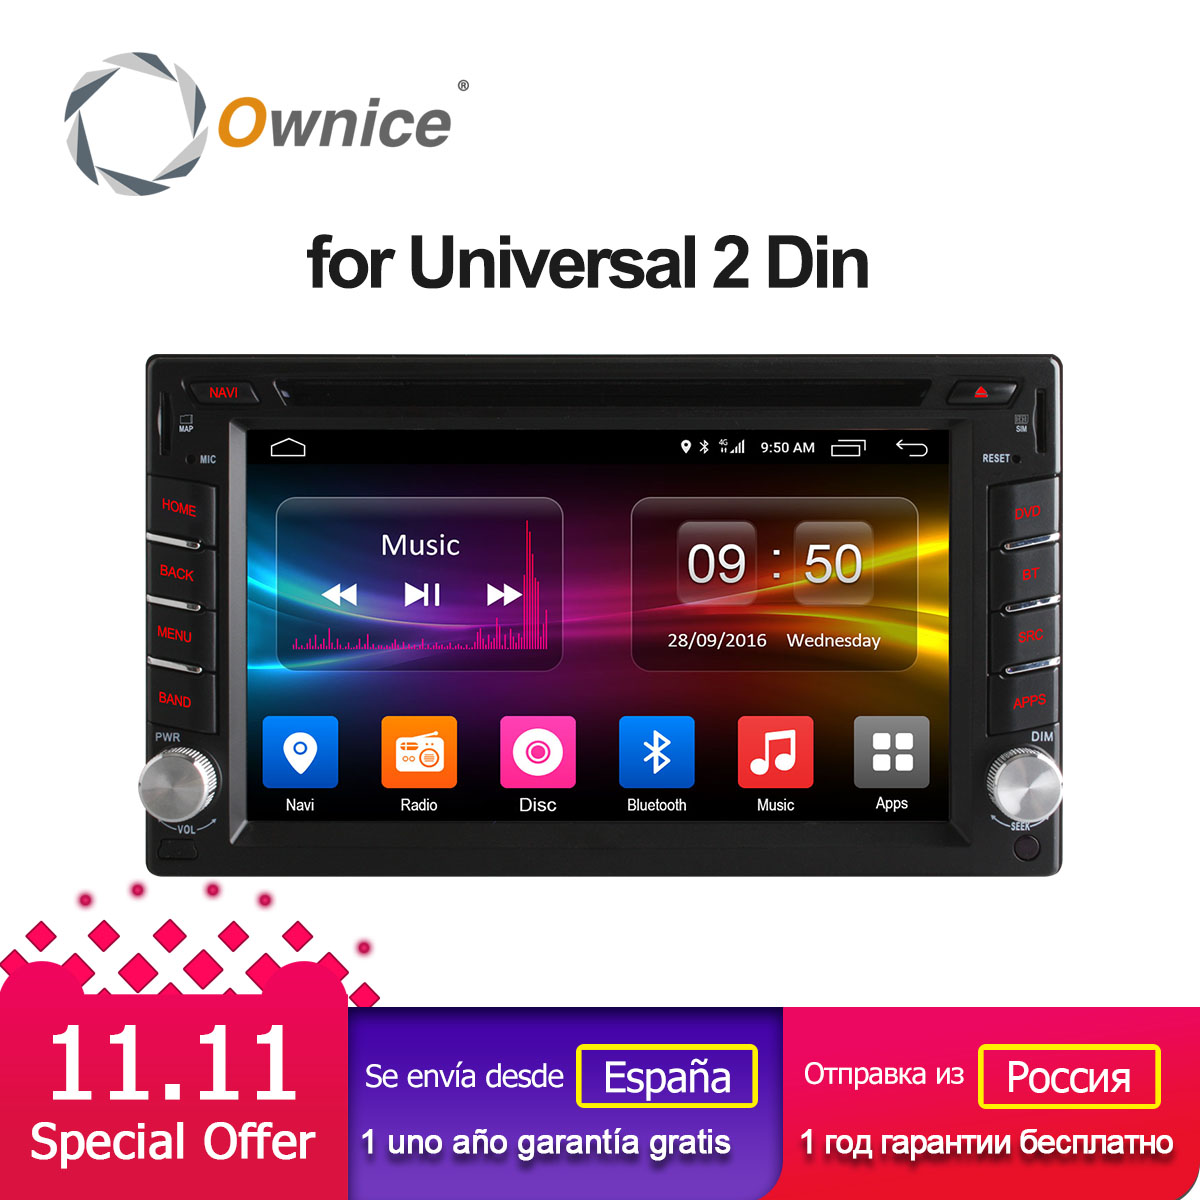 Ownice C500 Universal 2 din Android 6.0 Octa 8 Core Car DVD player GPS Wifi BT Radio BT 2GB RAM 32GB ROM 4G SIM LTE Network ownice c500 g10 octa core 2gb ram 32g rom android car dvd 8 1 gps for mazda 6 summit 2009 2015 wifi 4g lte radio dab dvr